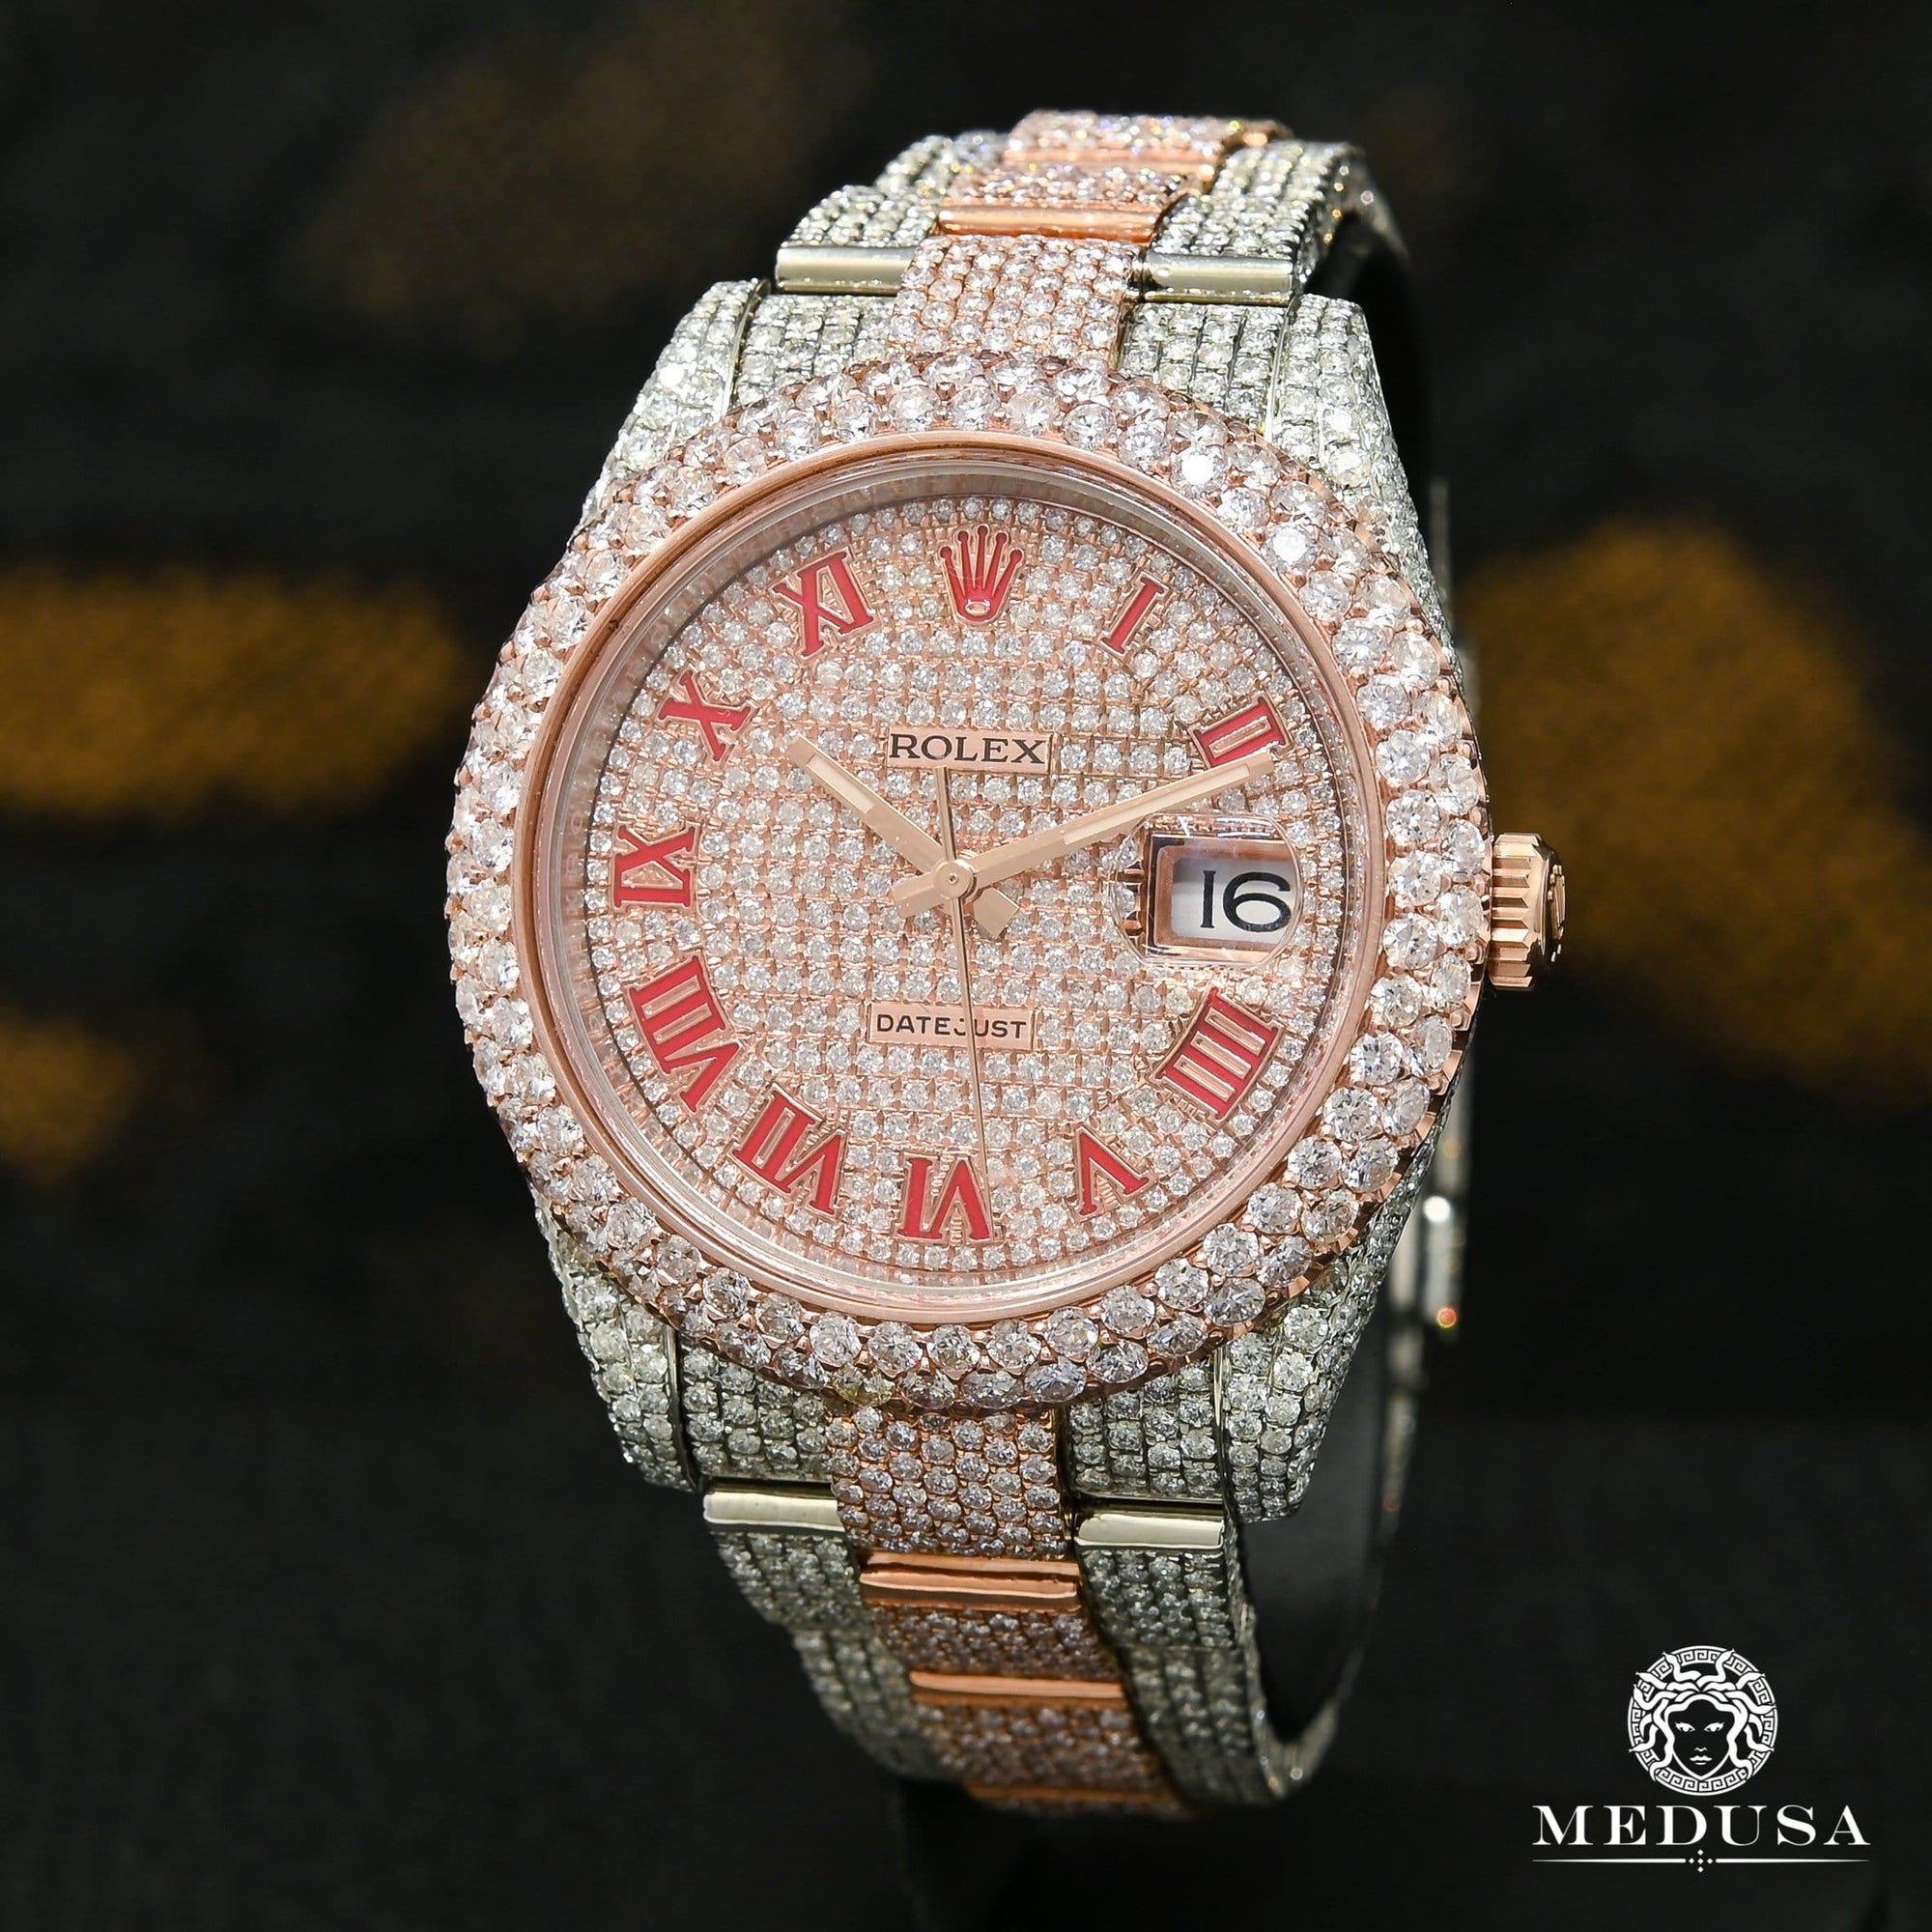 Rolex Datejust 41mm - Full Honeycomb Everose